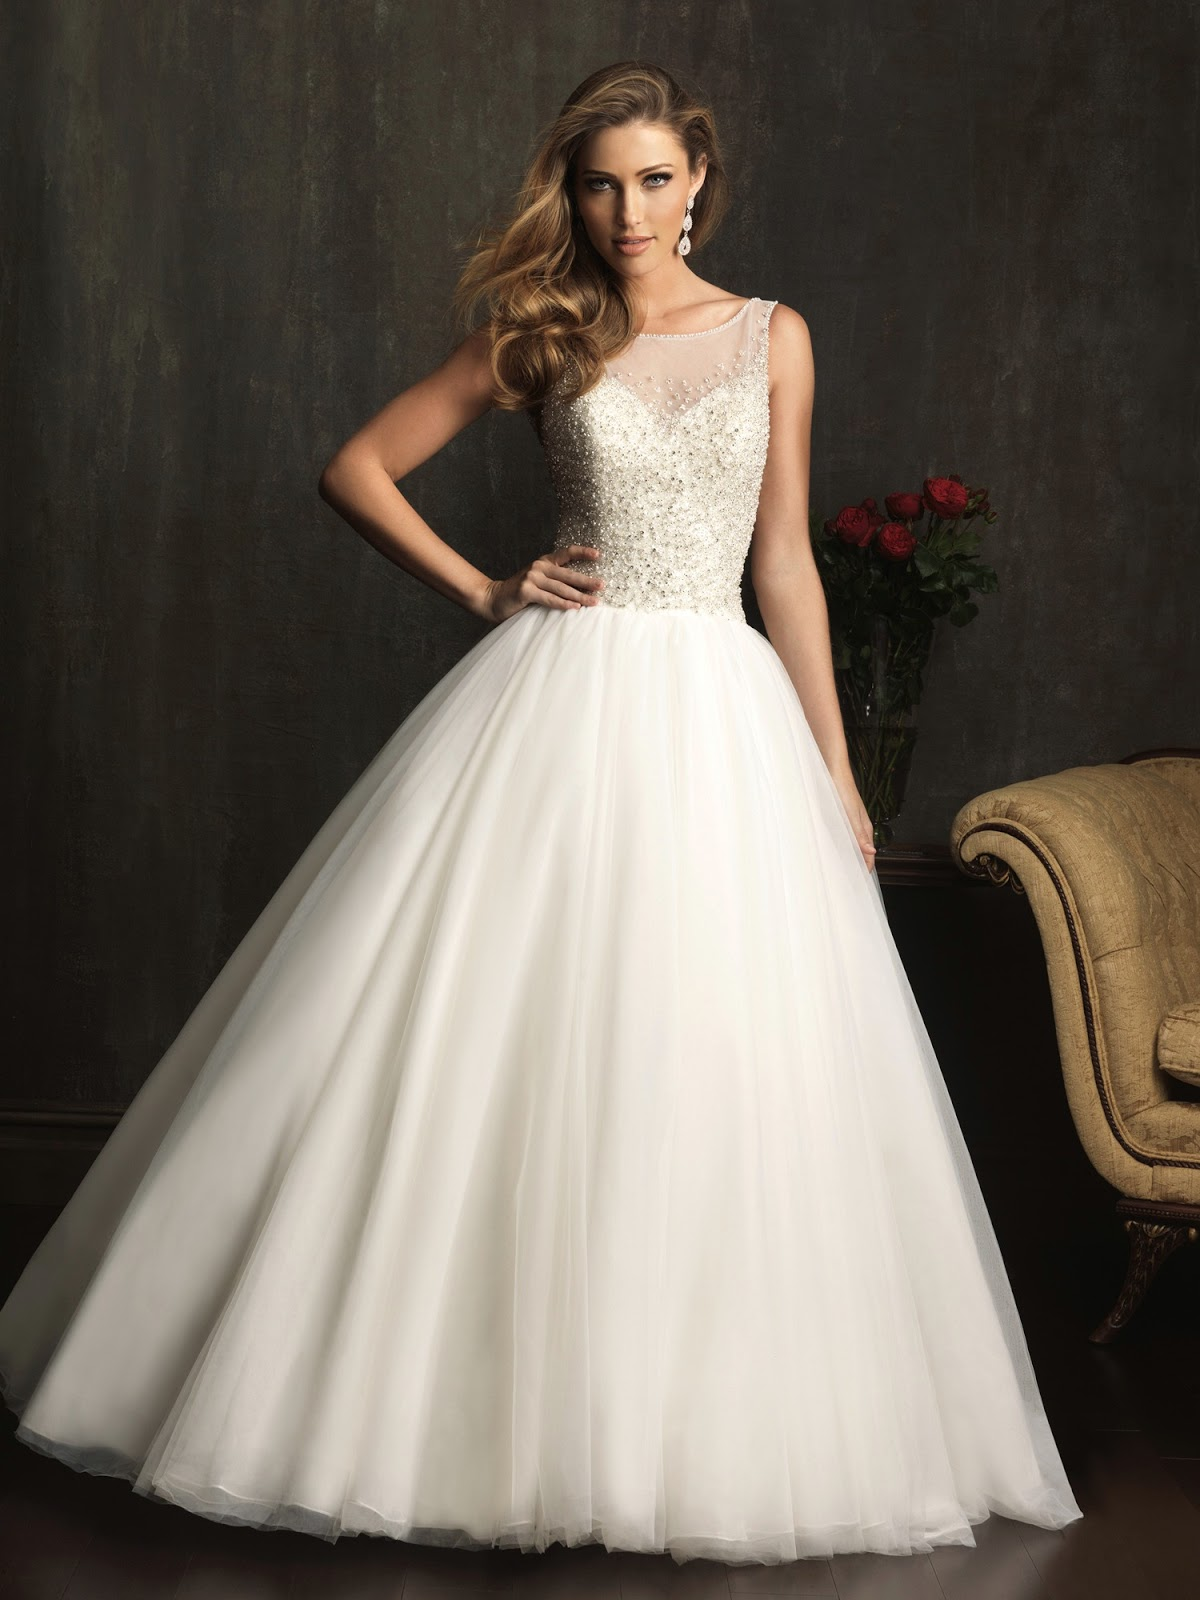 Dressybridal allure wedding dresses fall 2013 collection for Wedding dress neckline styles